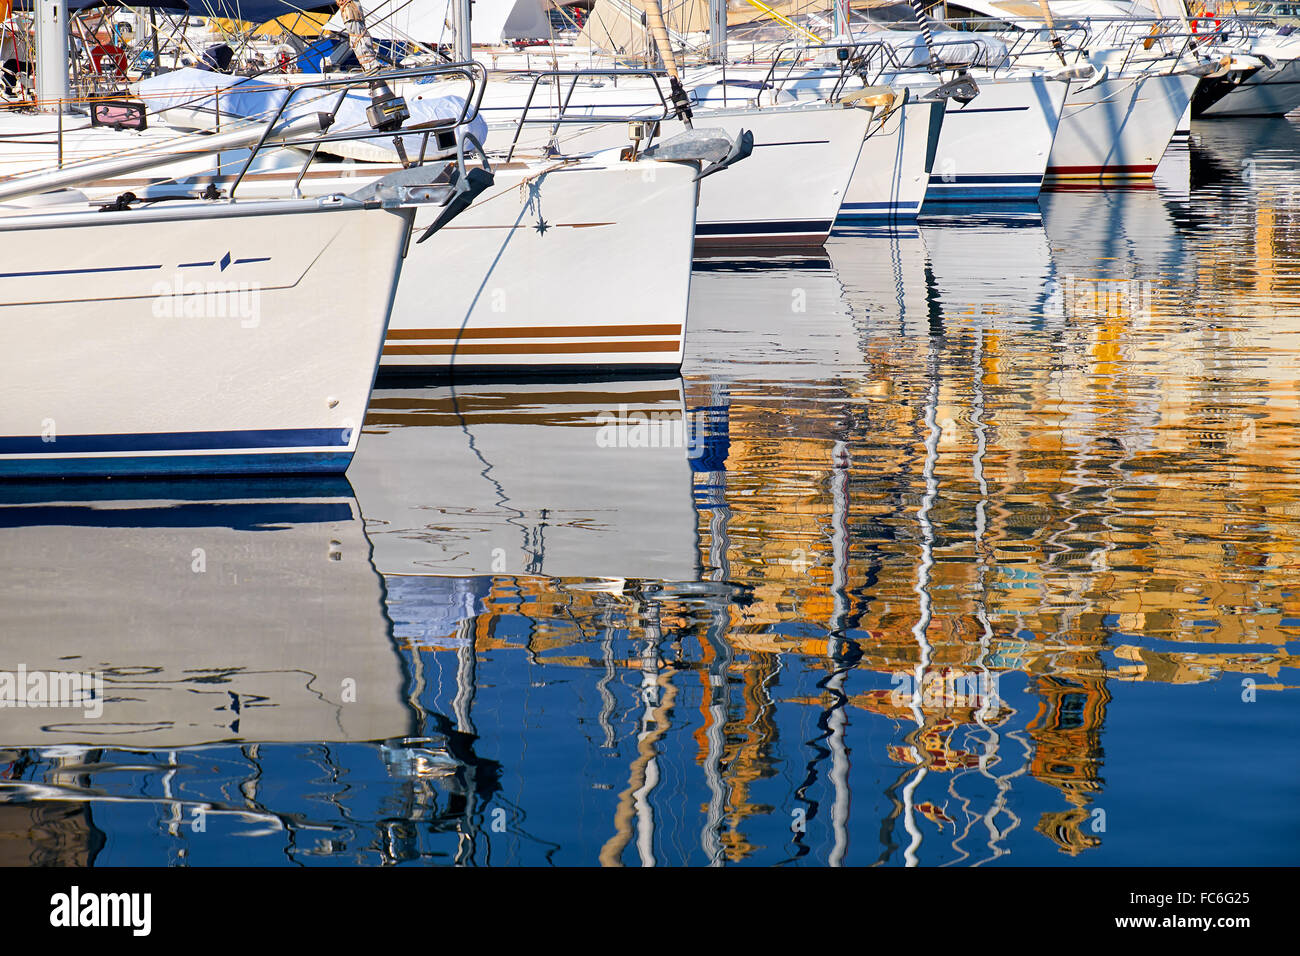 Reflection of yachts in water - Stock Image